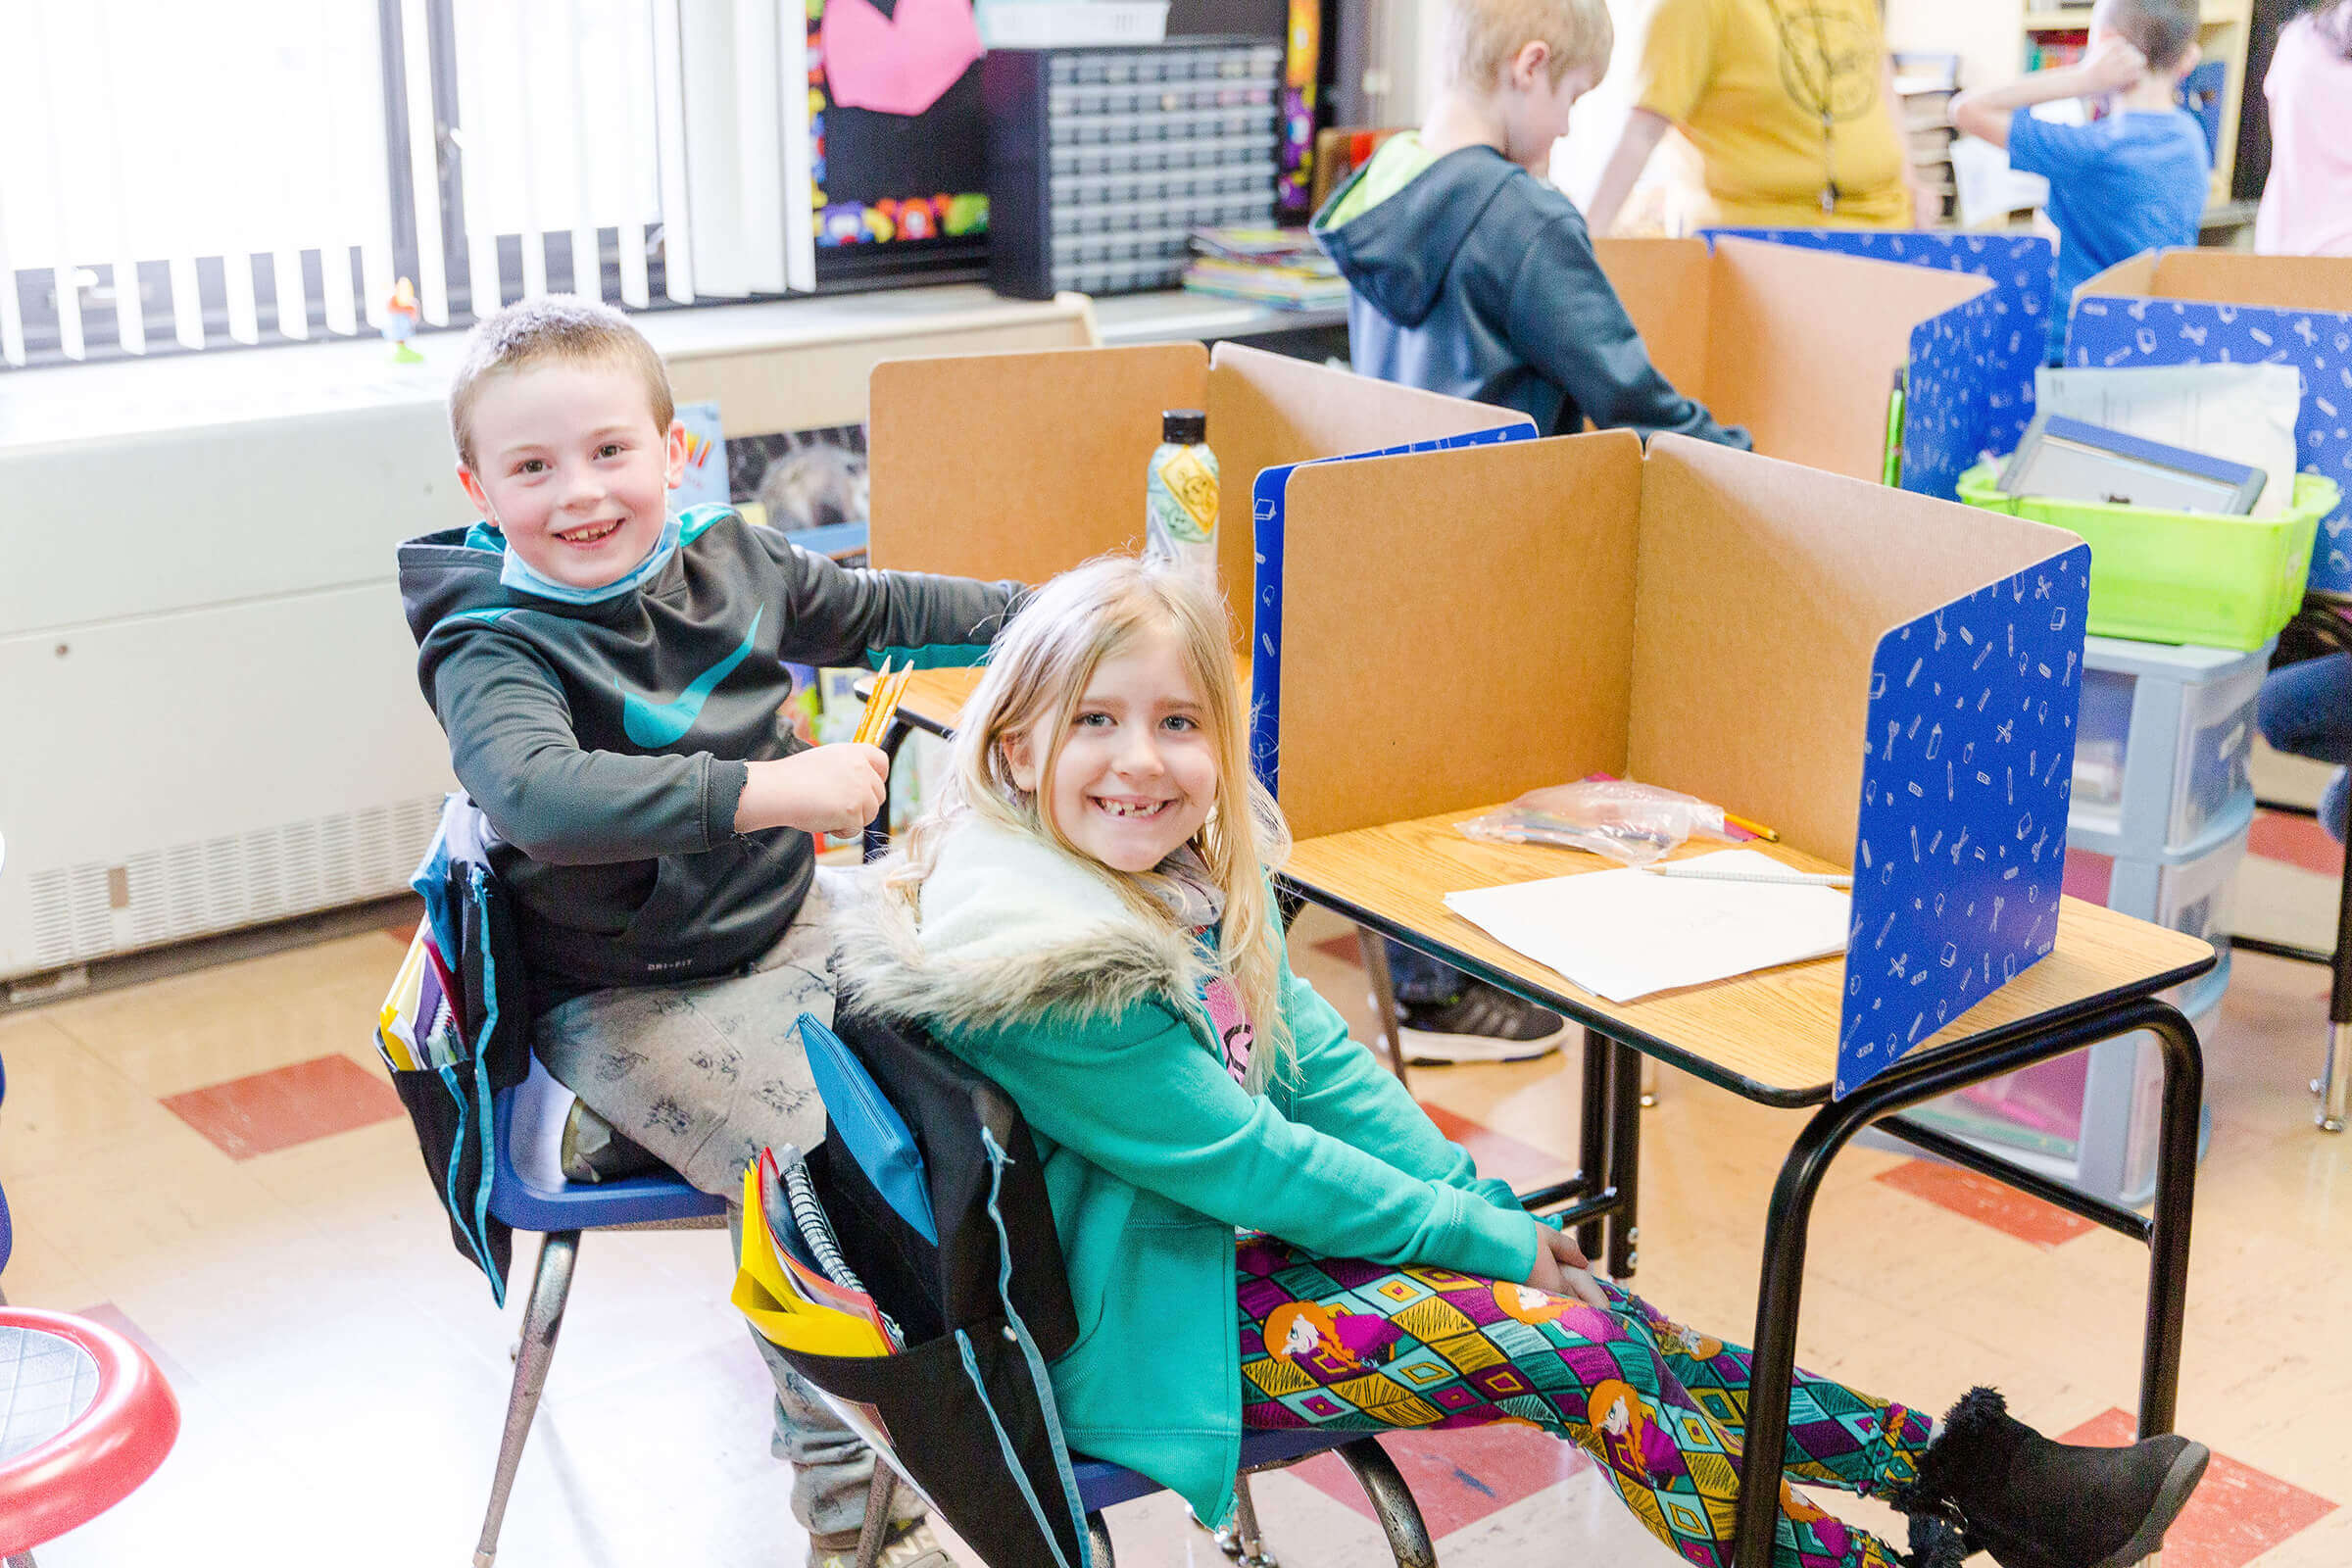 Two students in a classroom